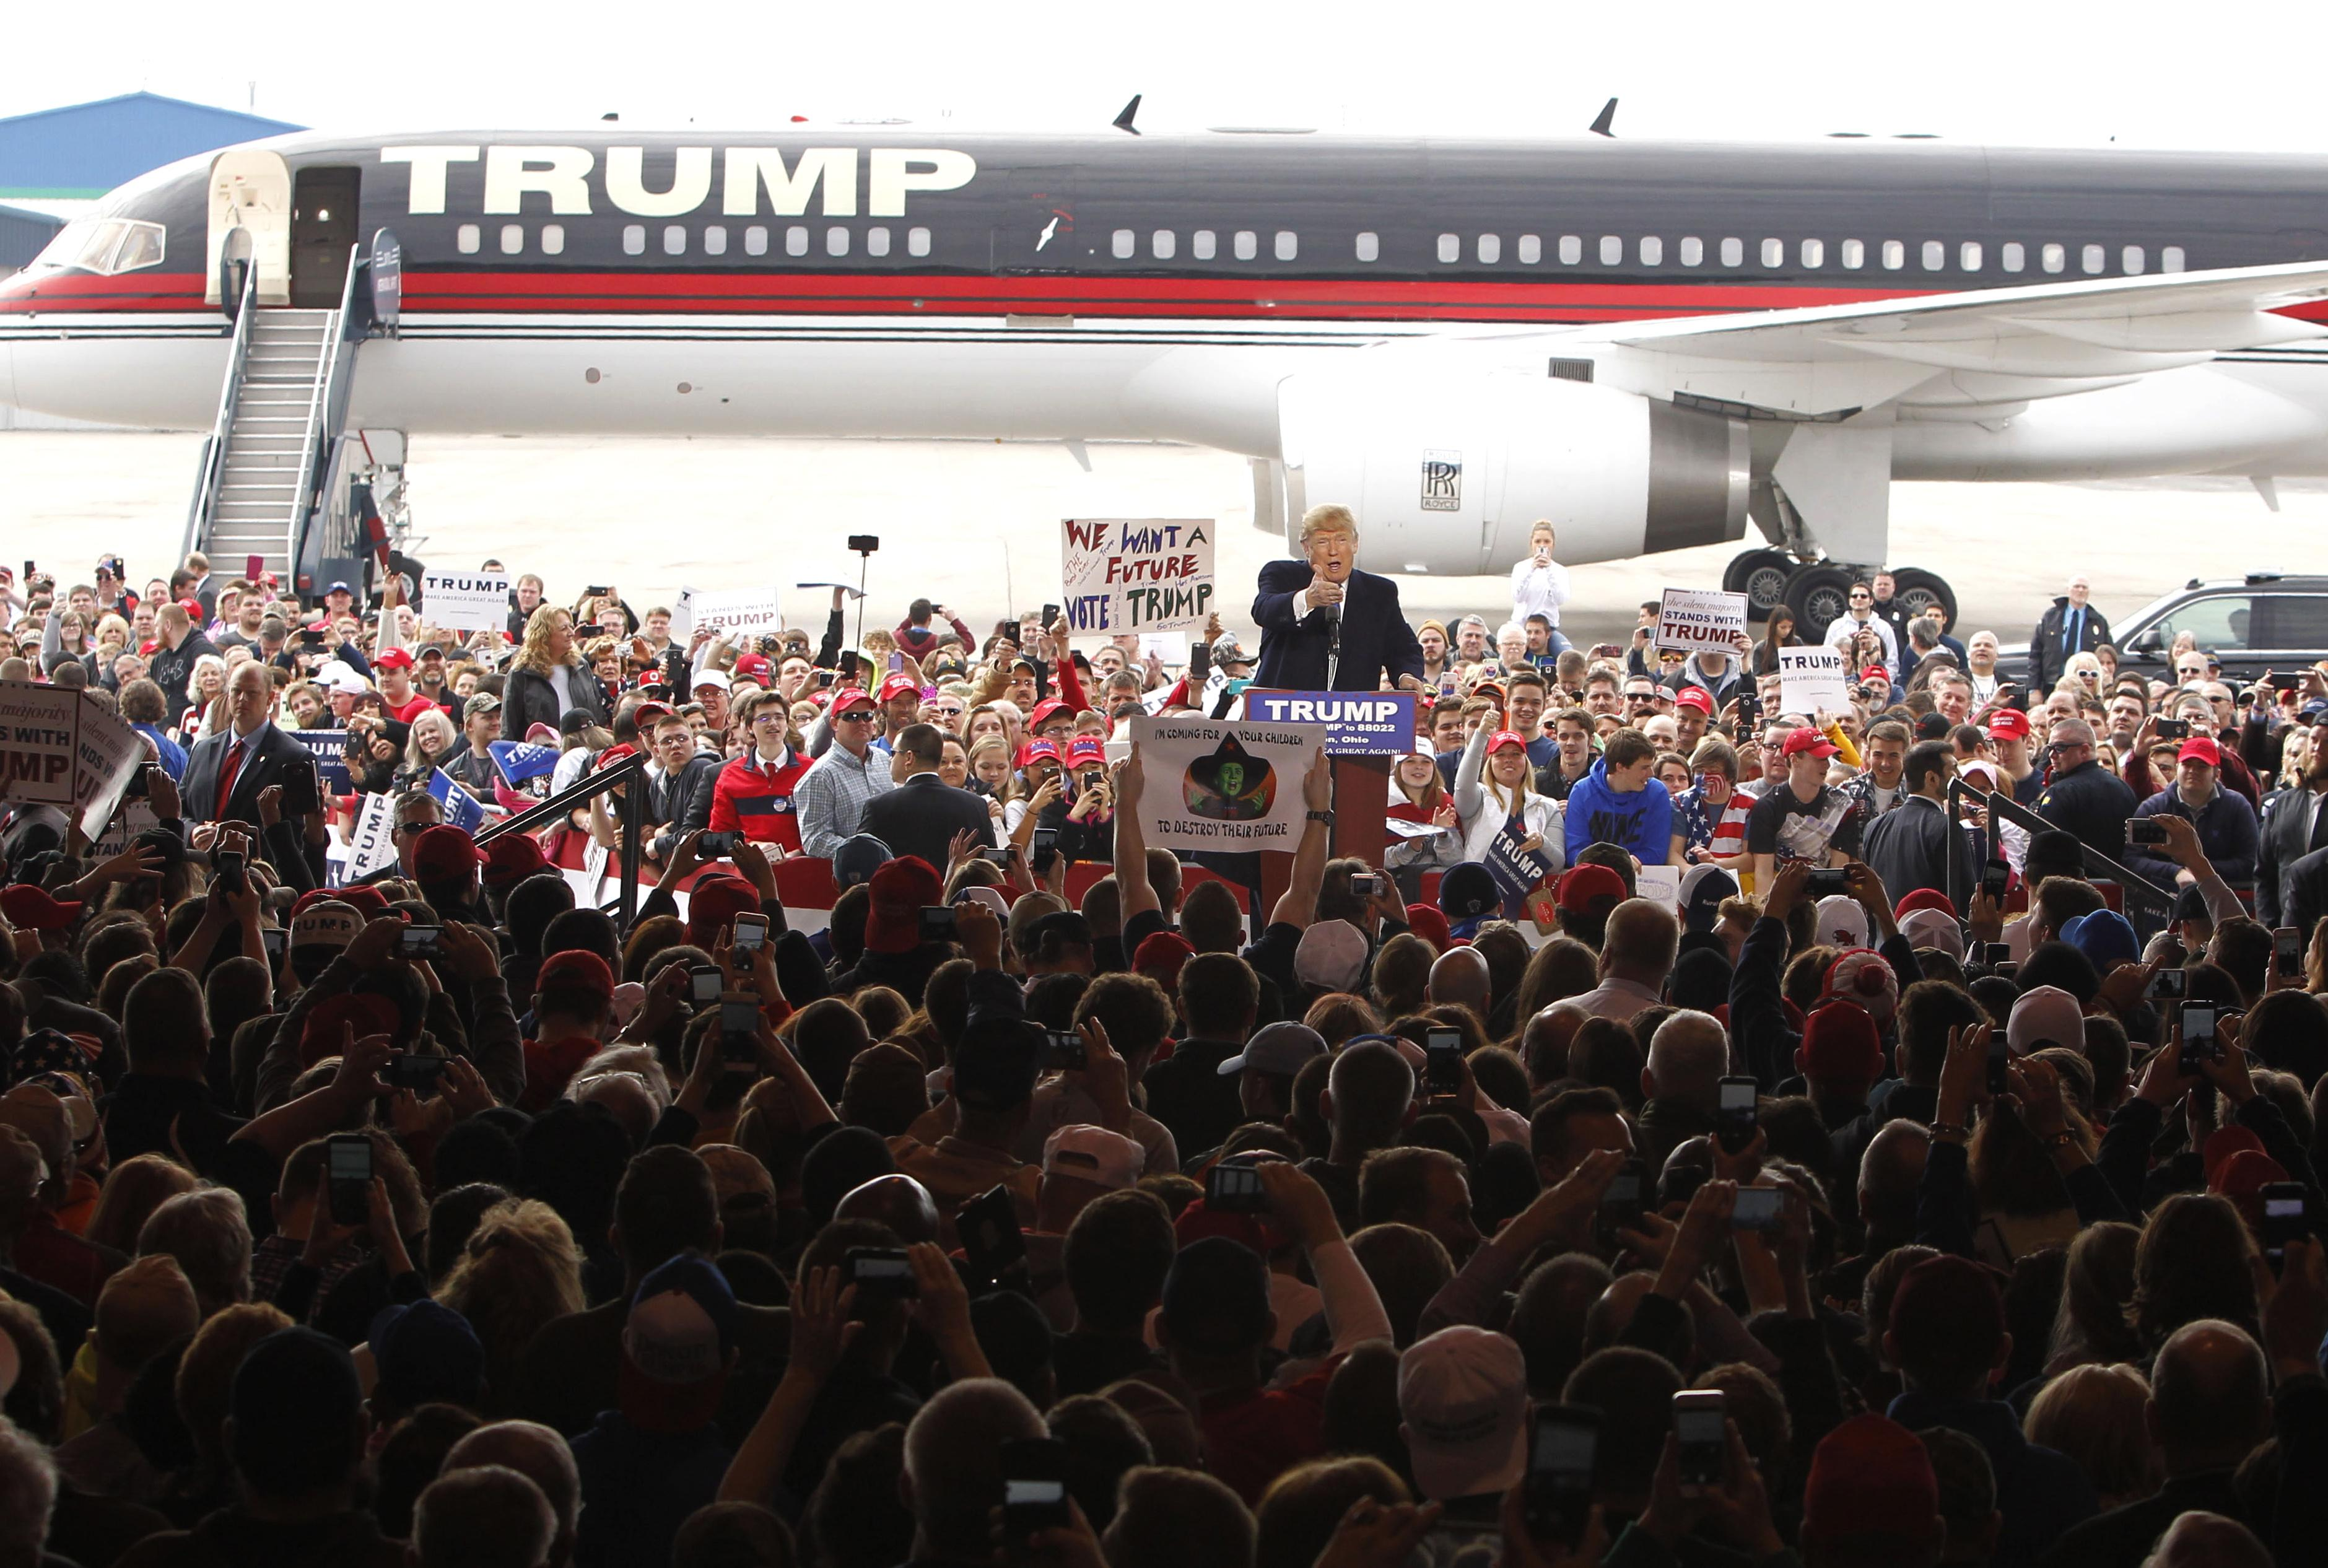 Gop rivals question whether theyd back trump as nominee the republican presidential candidate donald trump arrives at the wright brothers aero hangar for a rally publicscrutiny Image collections